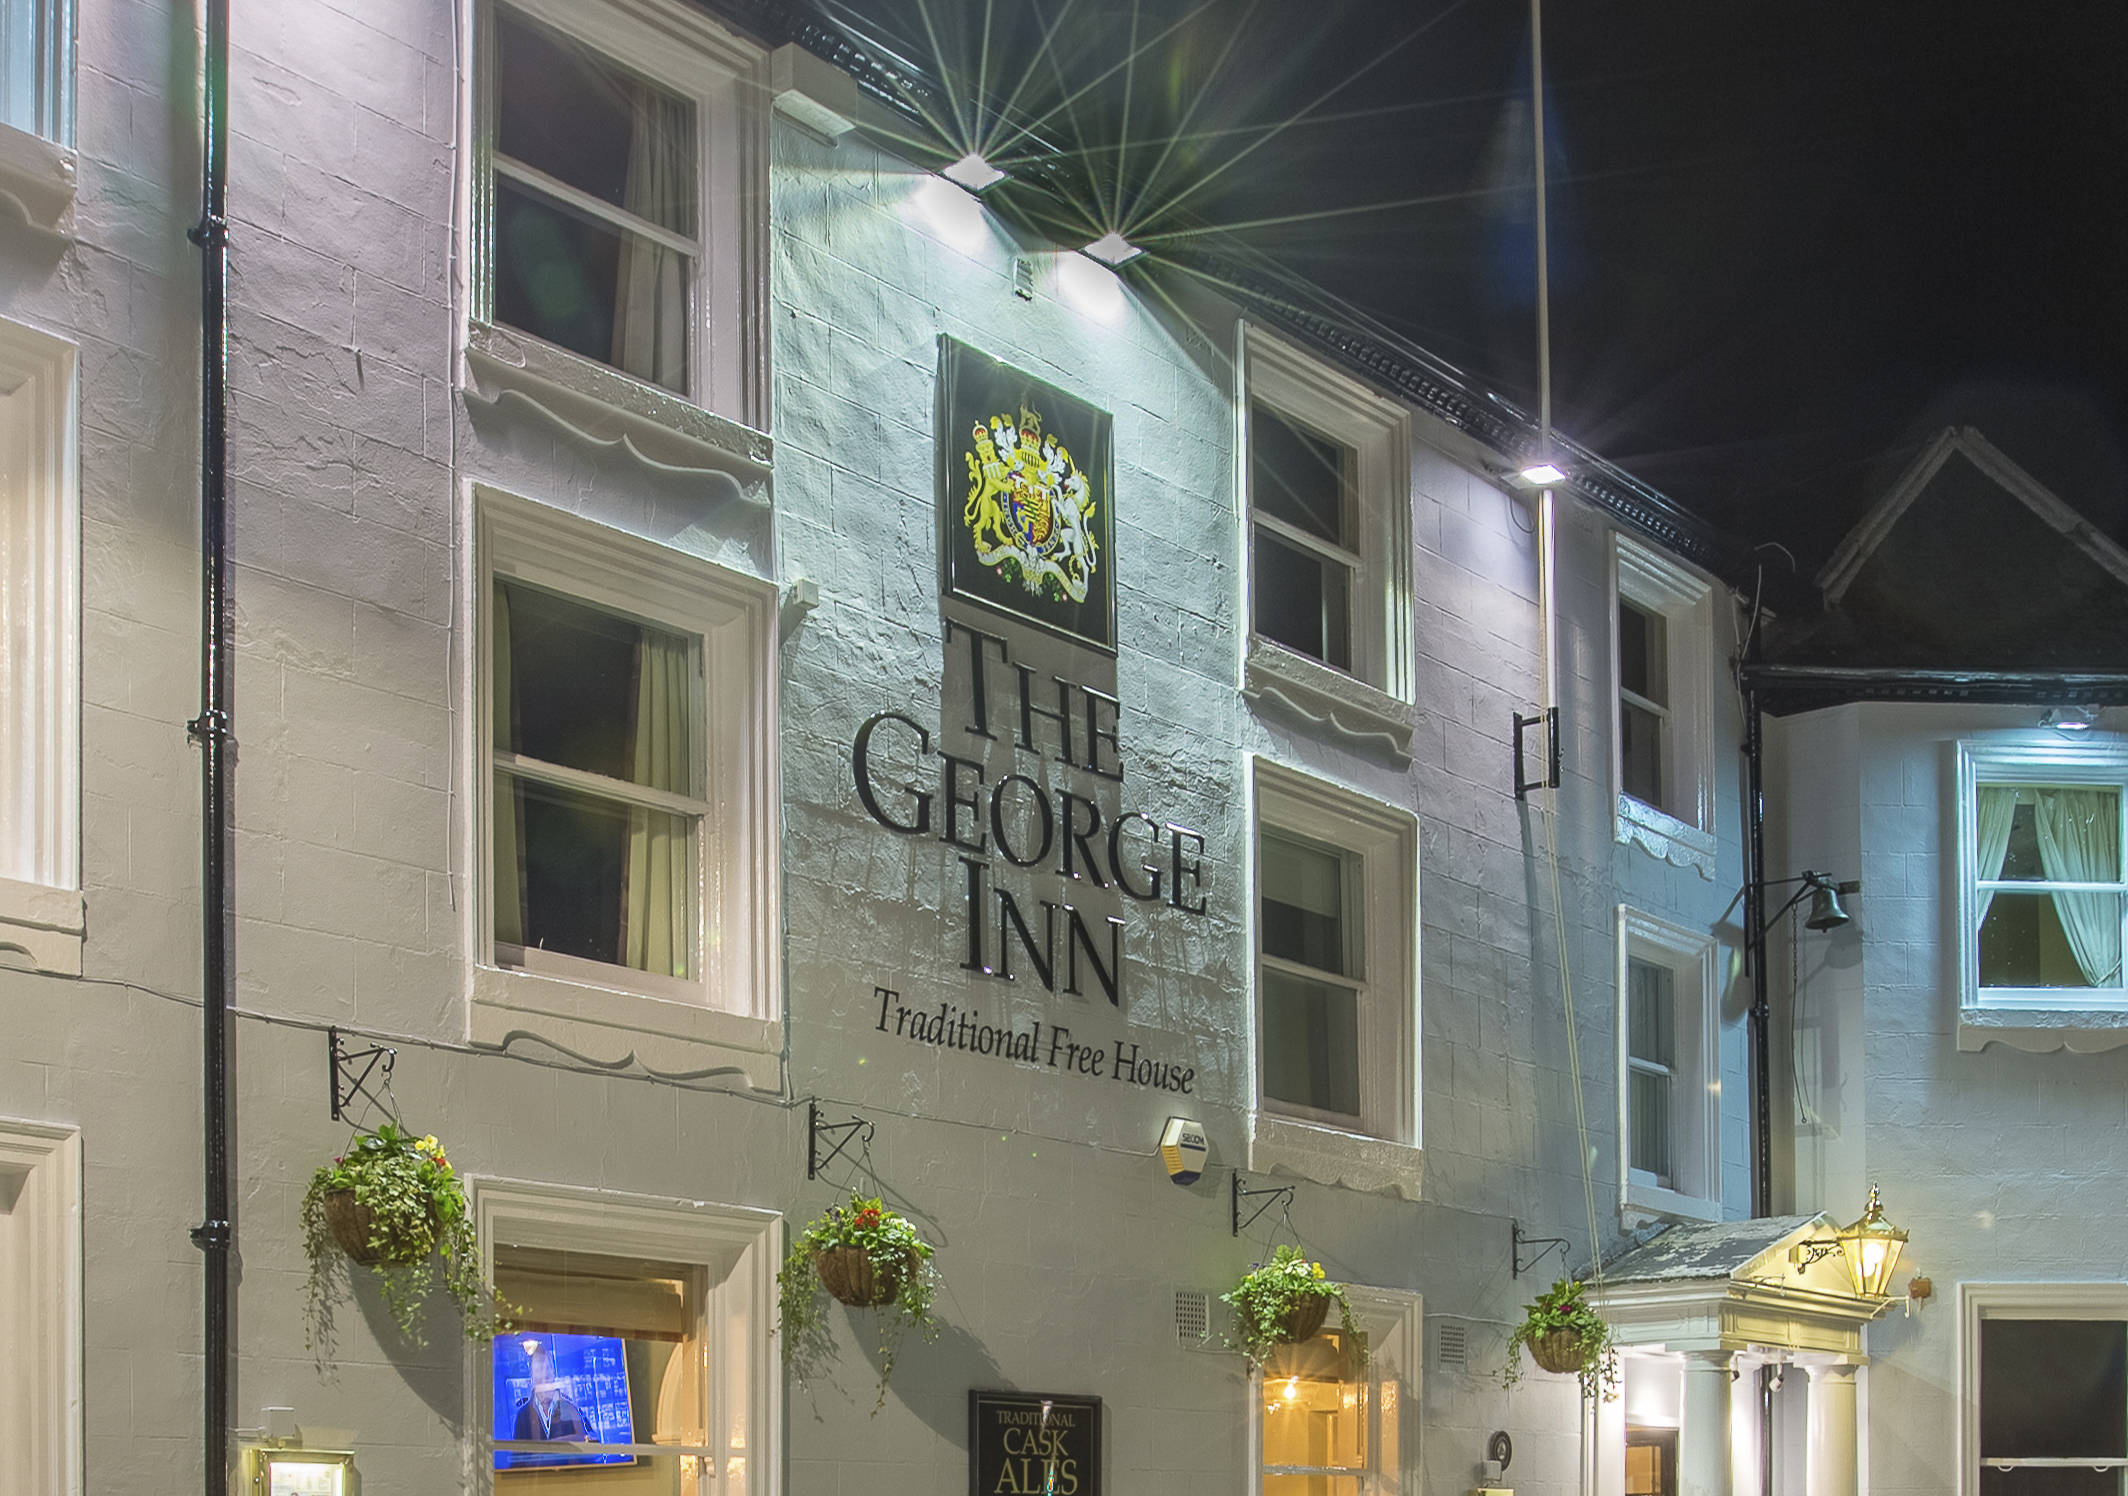 The George Inn Pubs In Selby Serving Pub Food